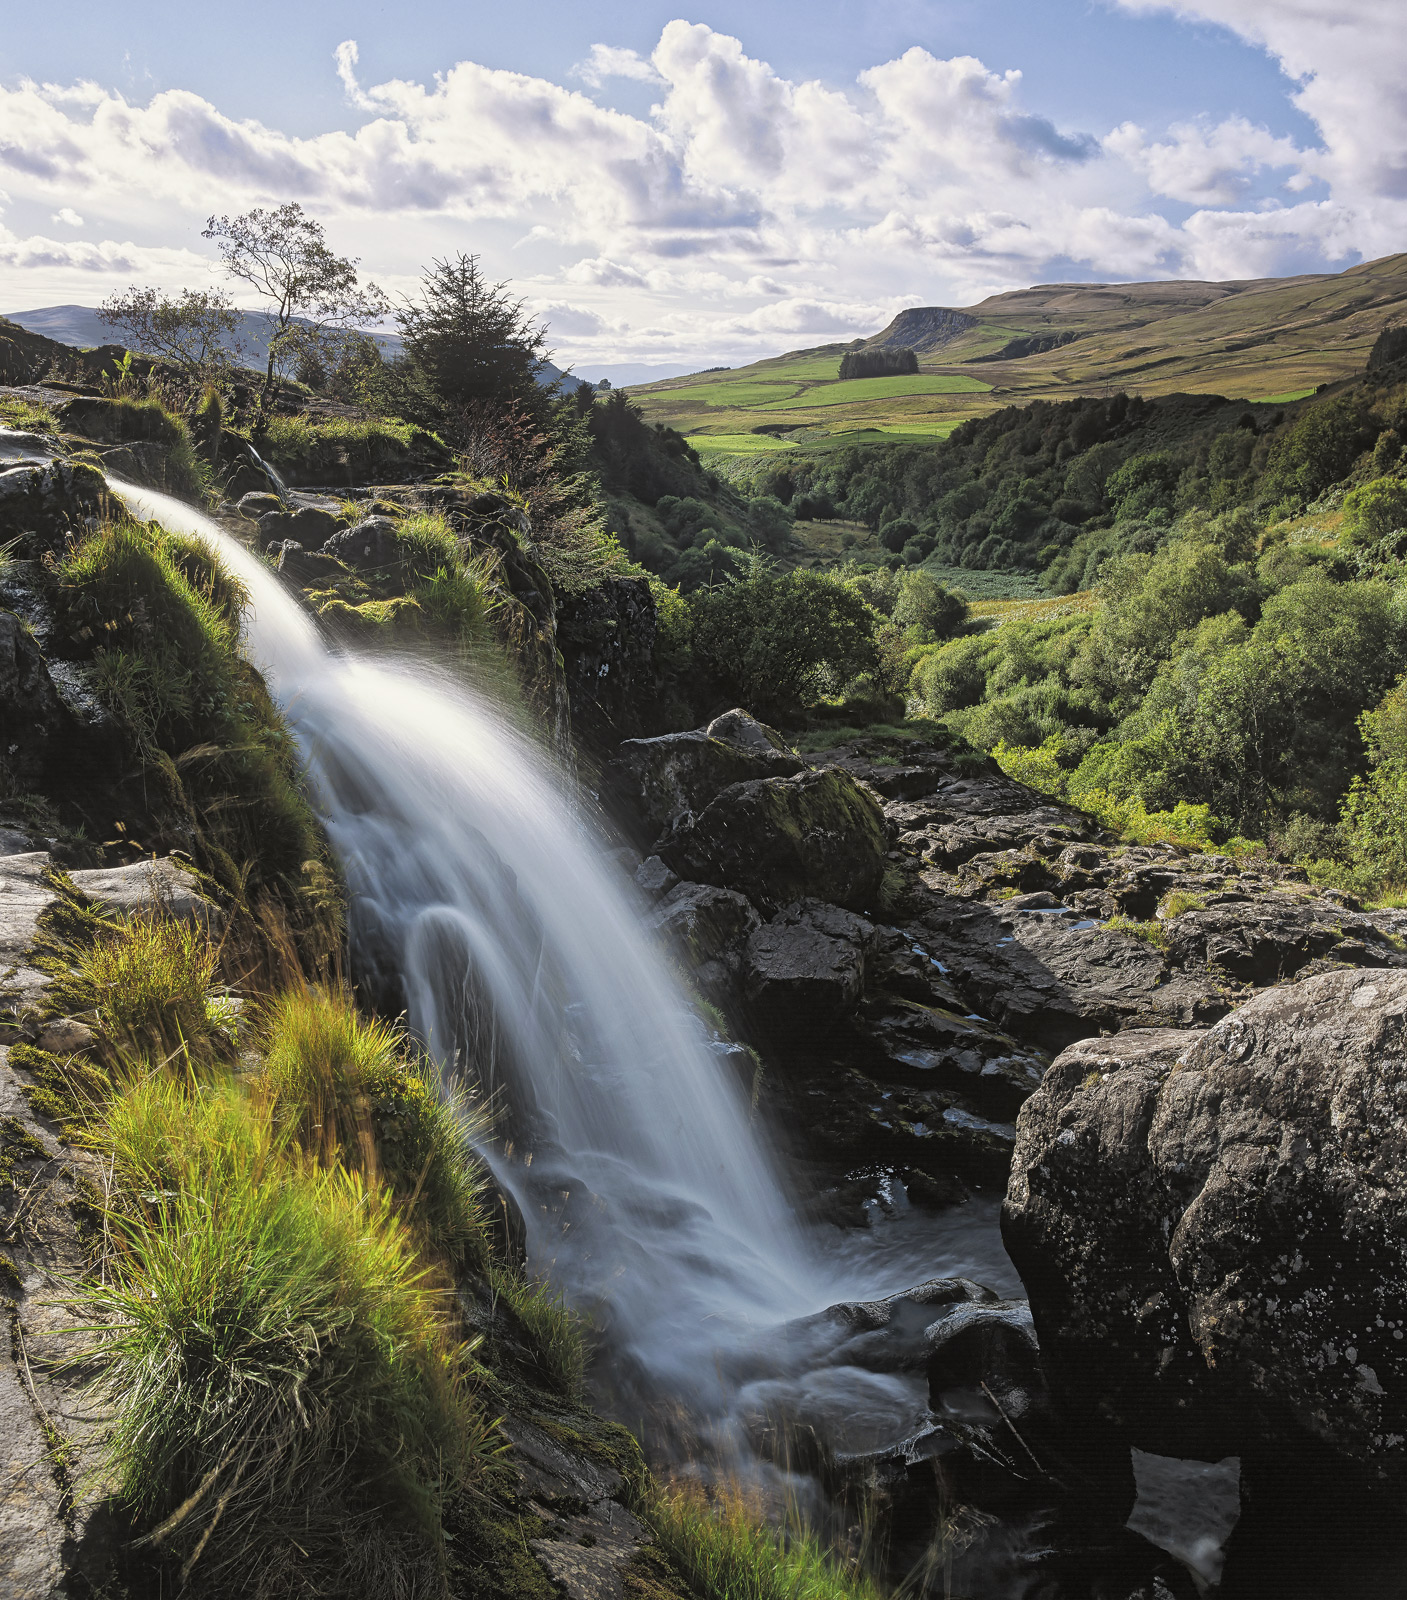 I have long had a desire to see the waterfall near the Loup of Fintry as I'd seen some images of it before and I found the setting...